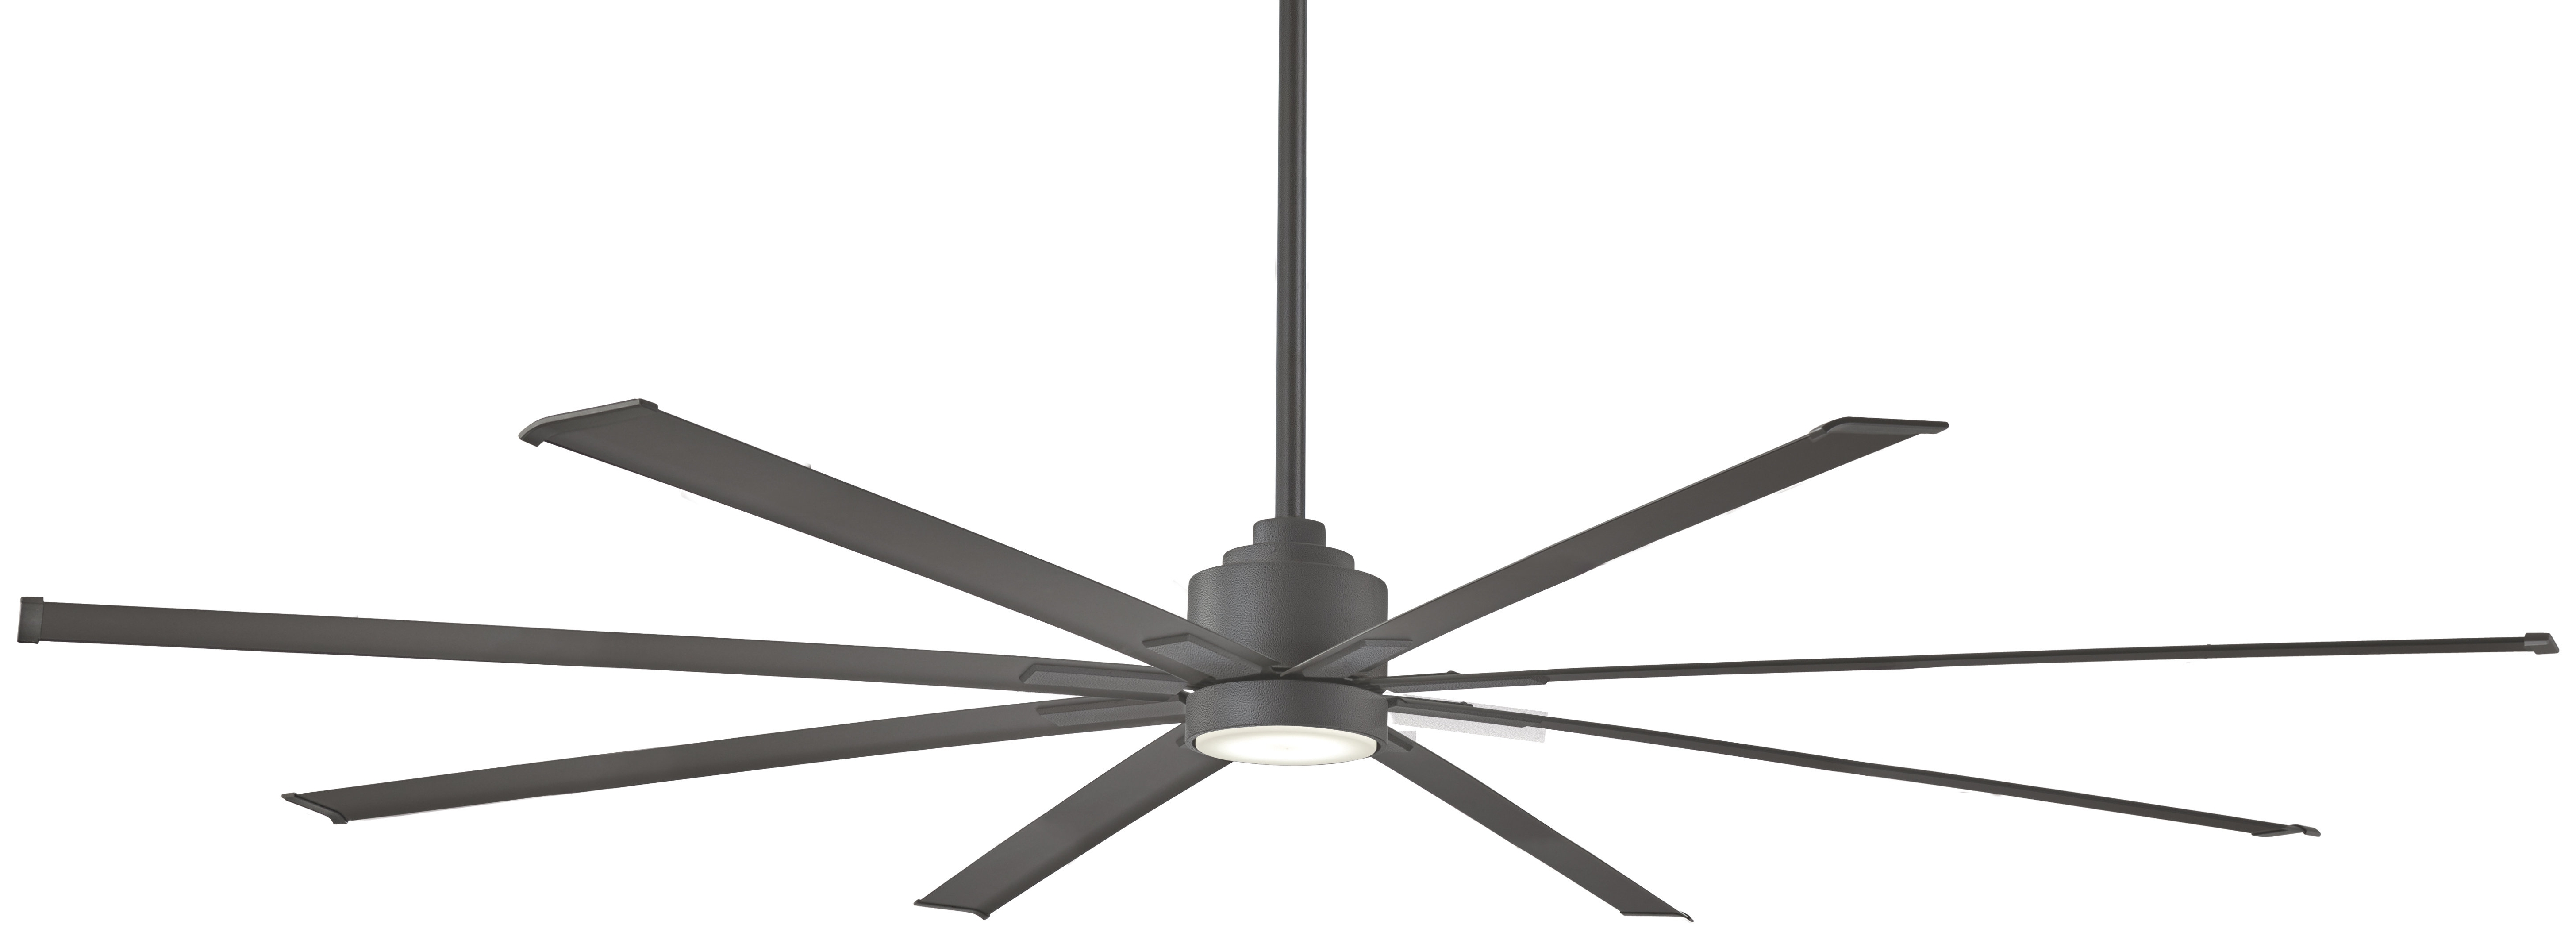 """Best And Newest Outdoor Ceiling Fans With Remote And Light With Minka Aire 84"""" Xtreme 8 Outdoor Ceiling Fan With Remote & Reviews (View 18 of 20)"""